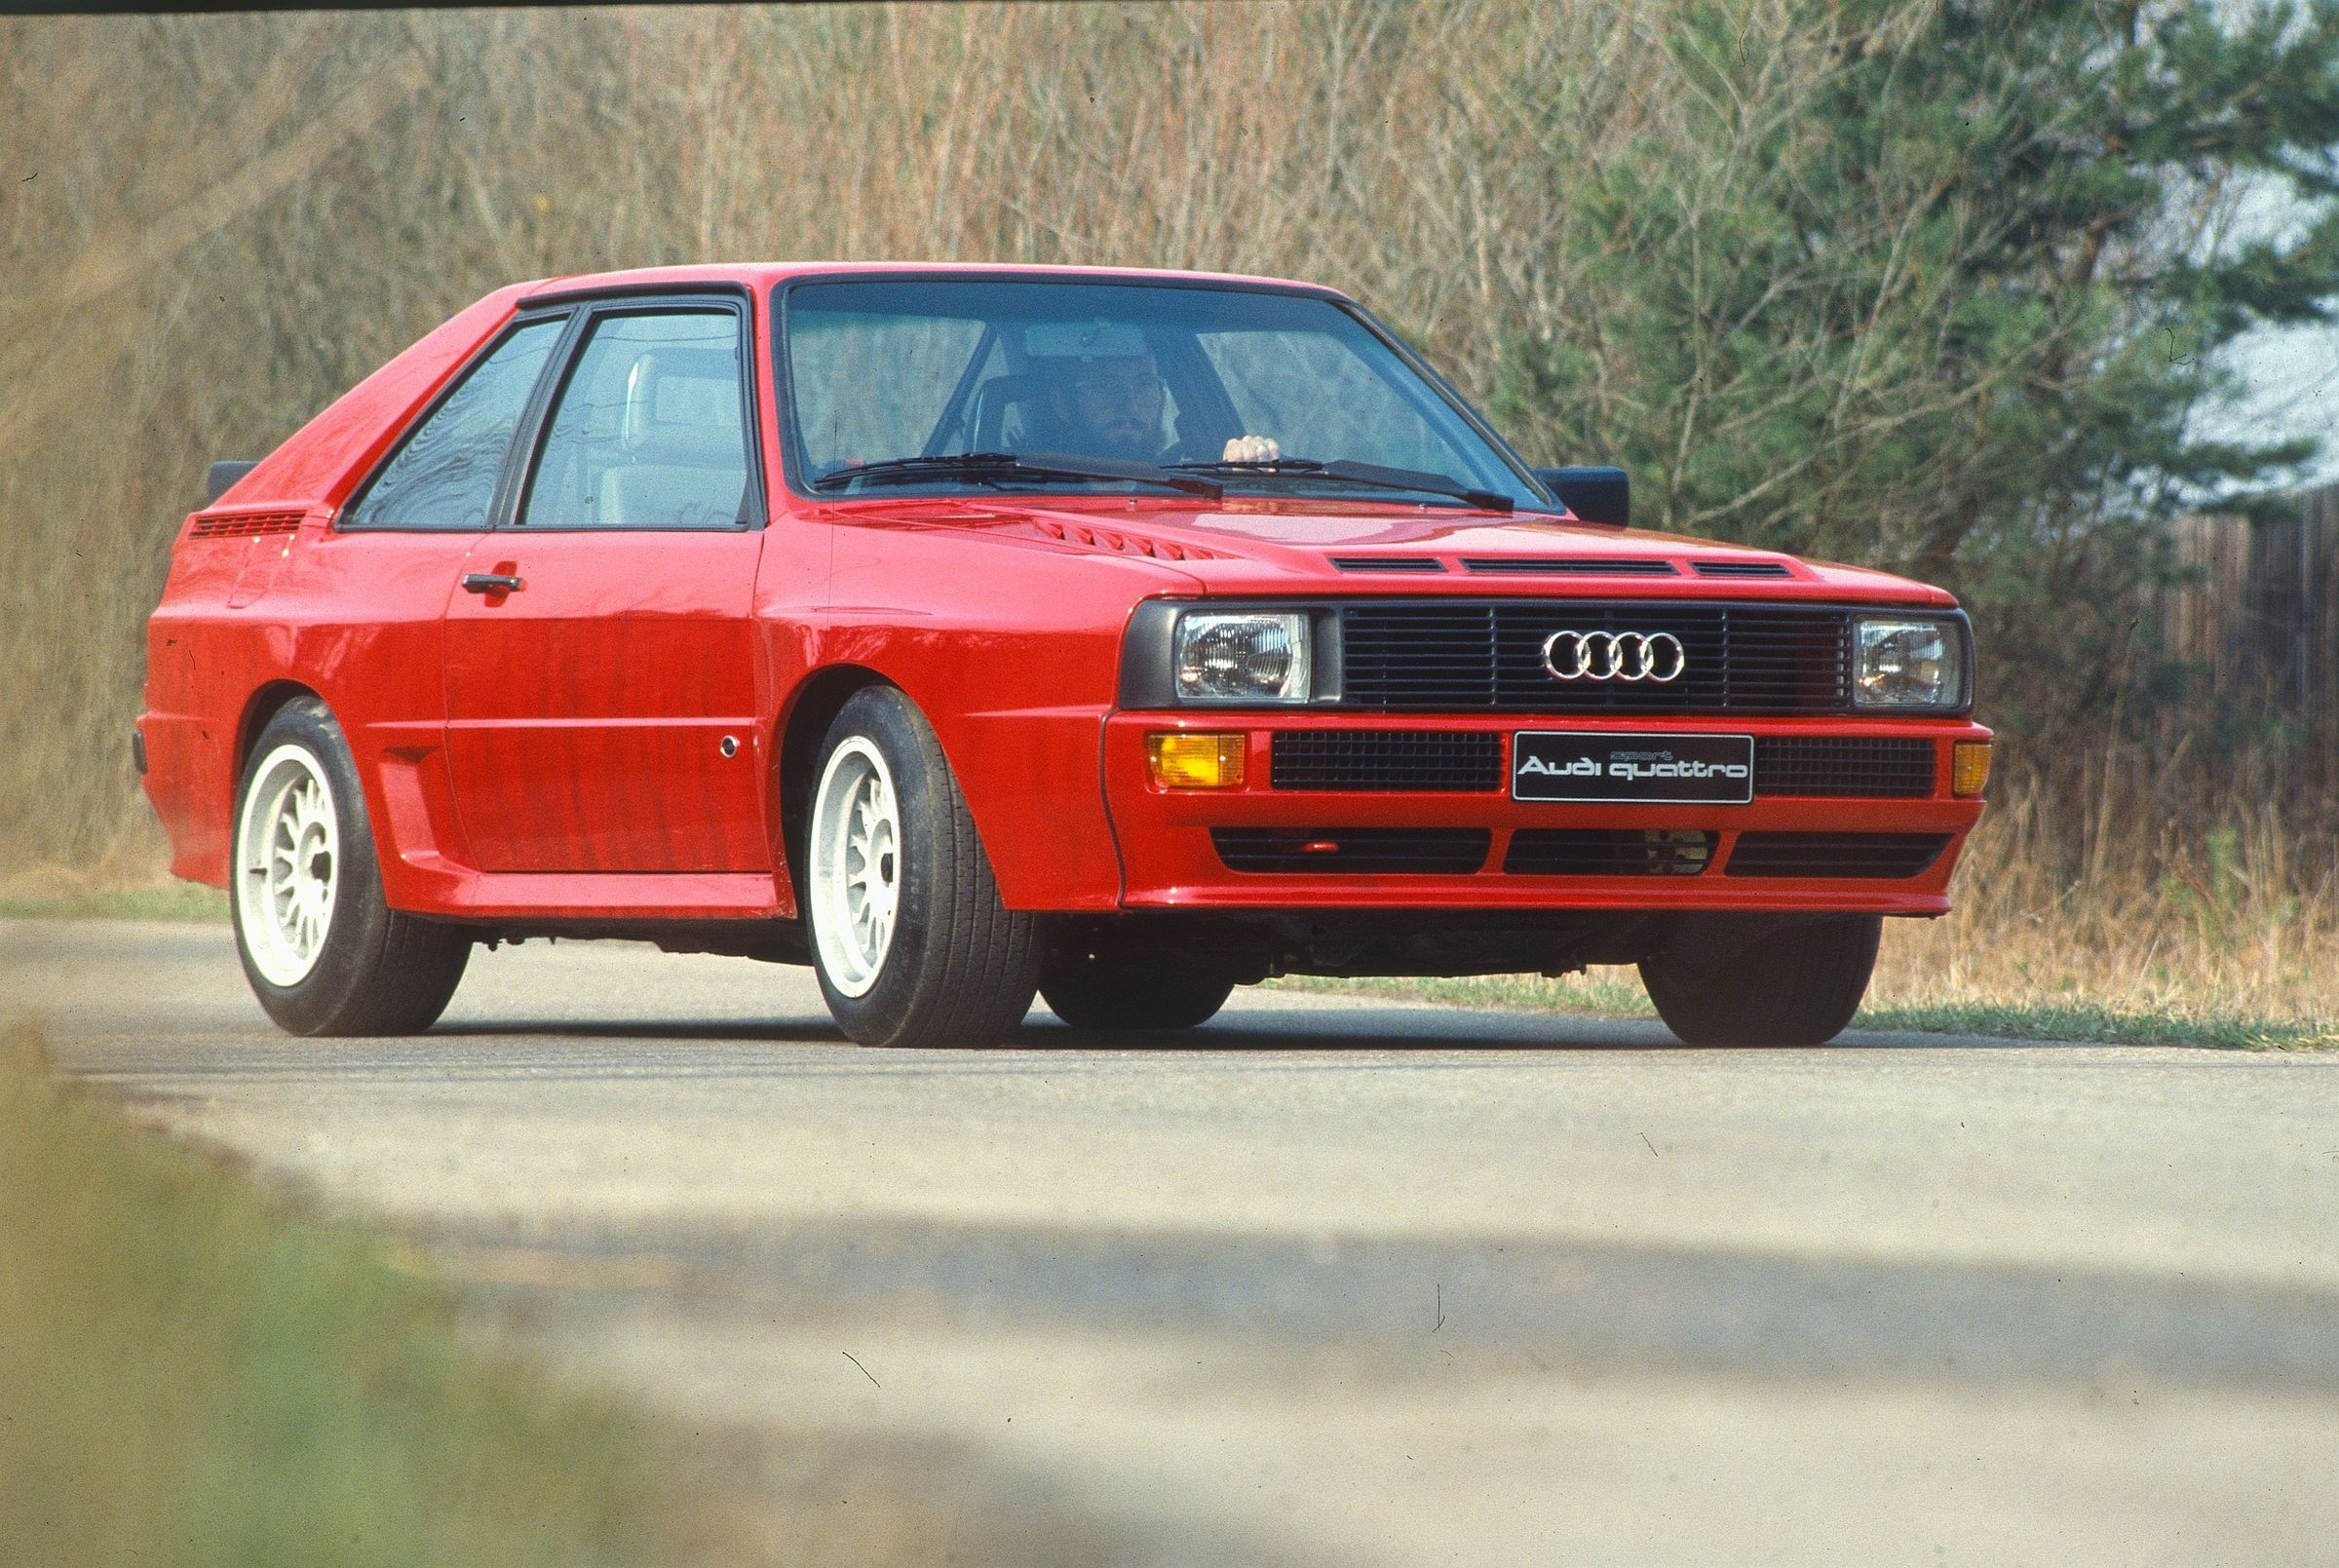 """A Slogan with History: Audi marks 50 Years of """"Vorsprung durch Technik"""" - Image 4"""